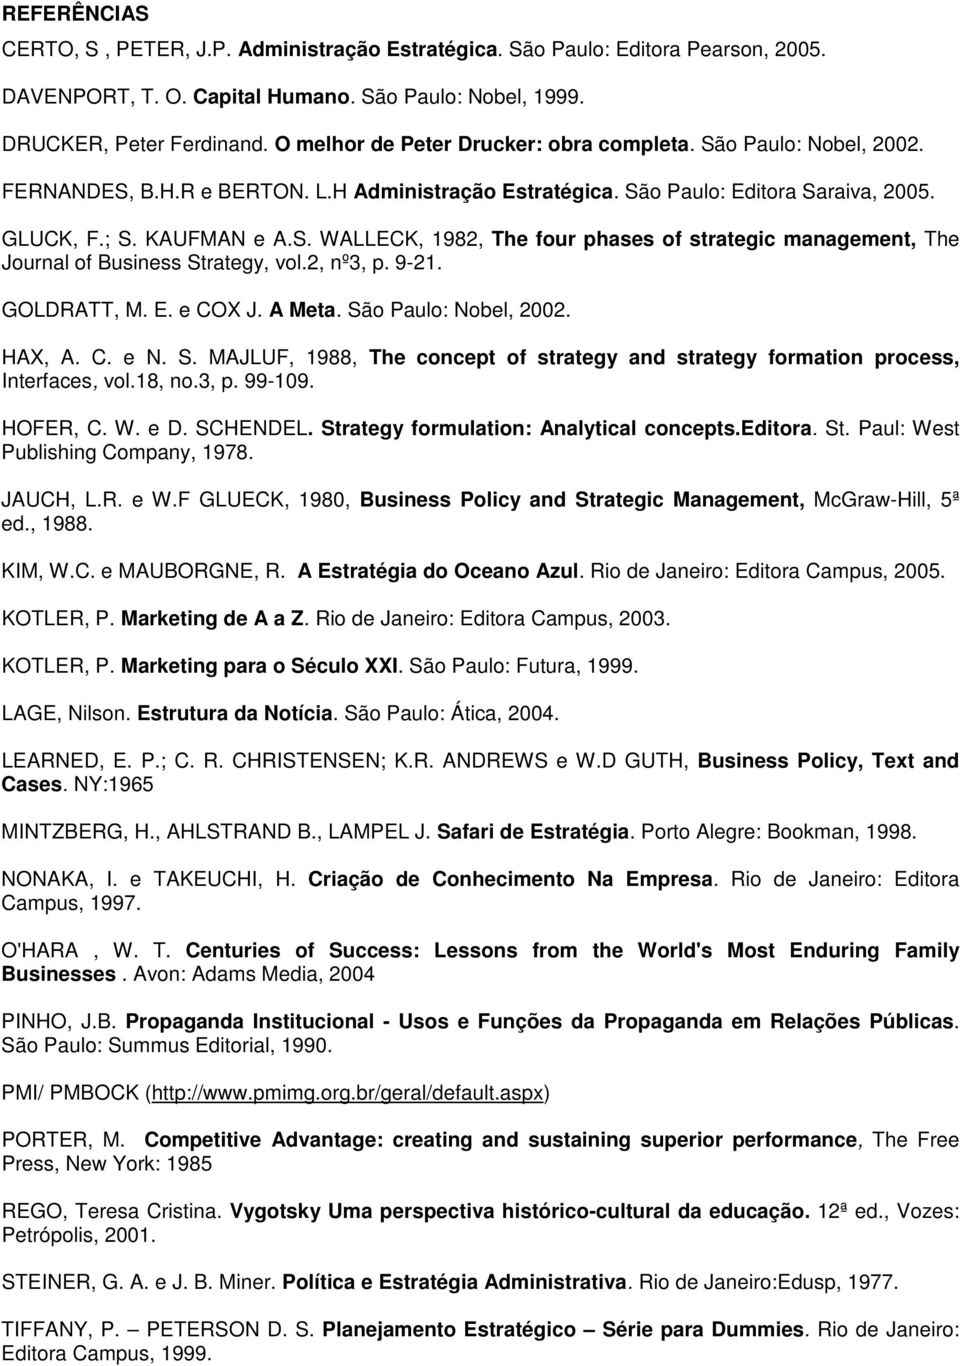 2, nº3, p. 9-21. GOLDRATT, M. E. e COX J. A Meta. São Paulo: Nobel, 2002. HAX, A. C. e N. S. MAJLUF, 1988, The concept of strategy and strategy formation process, Interfaces, vol.18, no.3, p. 99-109.